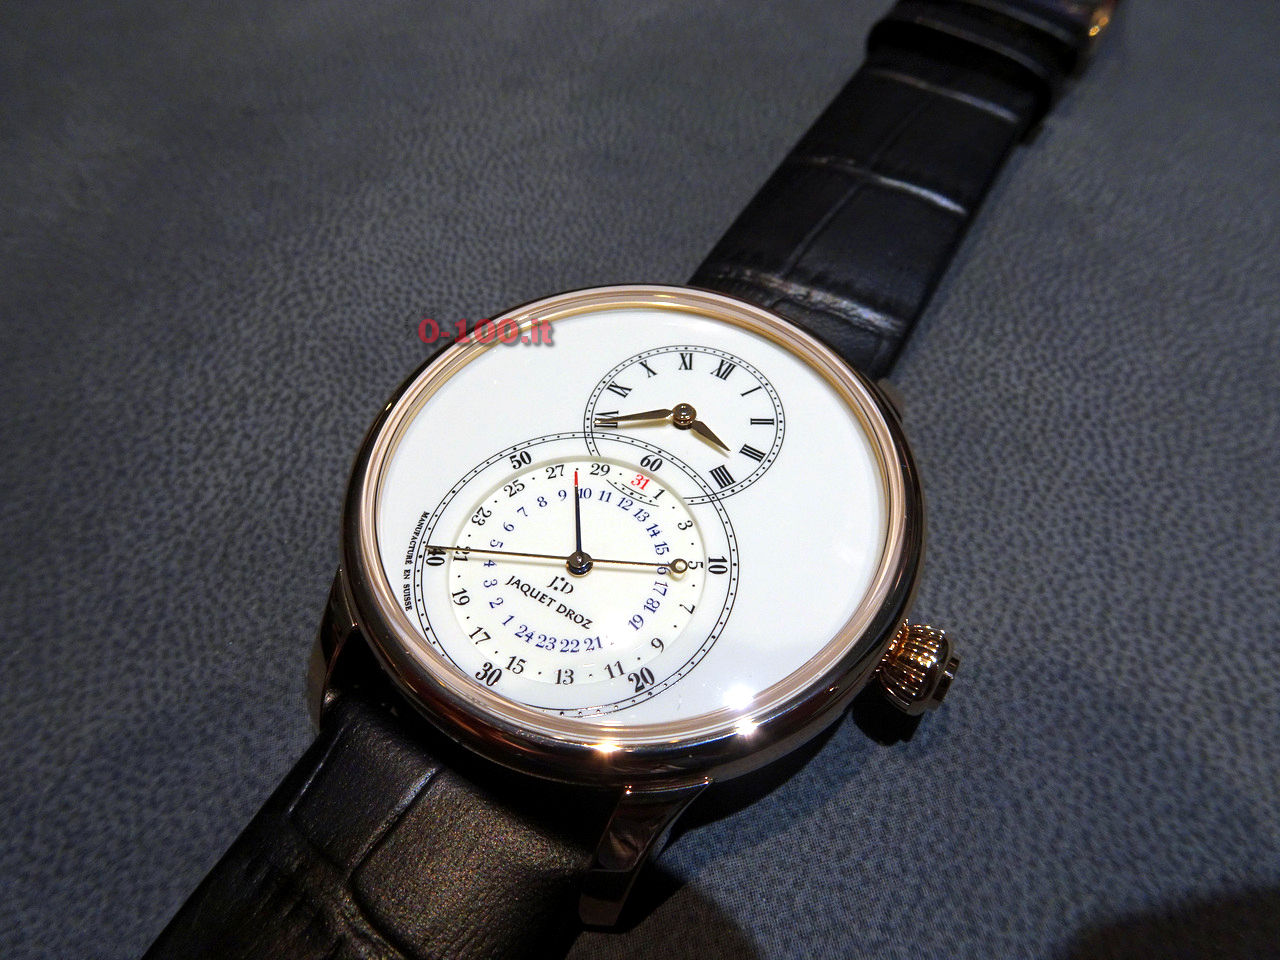 baselworld_2016-jaquet-droz-0-100-it_1